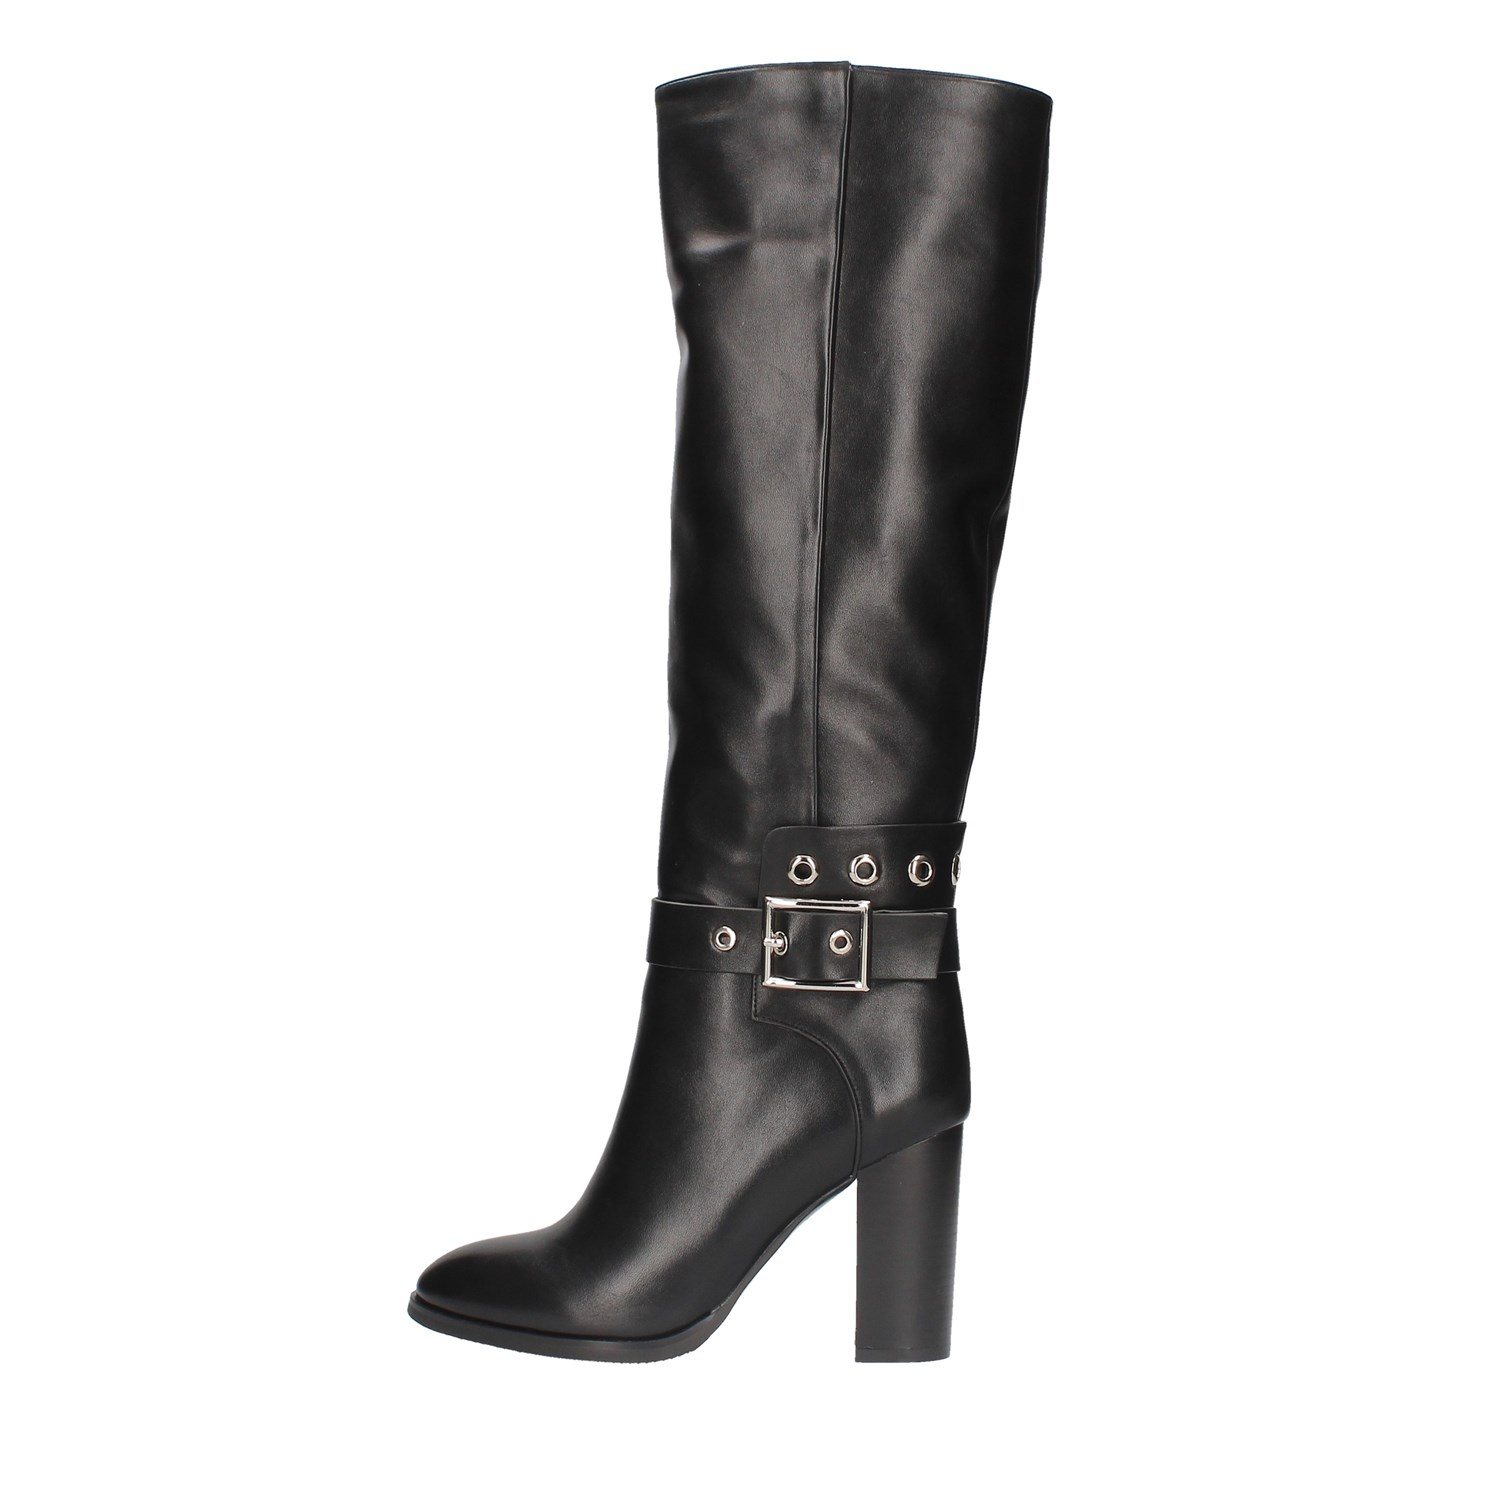 lowest price 2e833 c99d9 Boots Luciano Barachini Woman - black - Buy Boots On line on ...